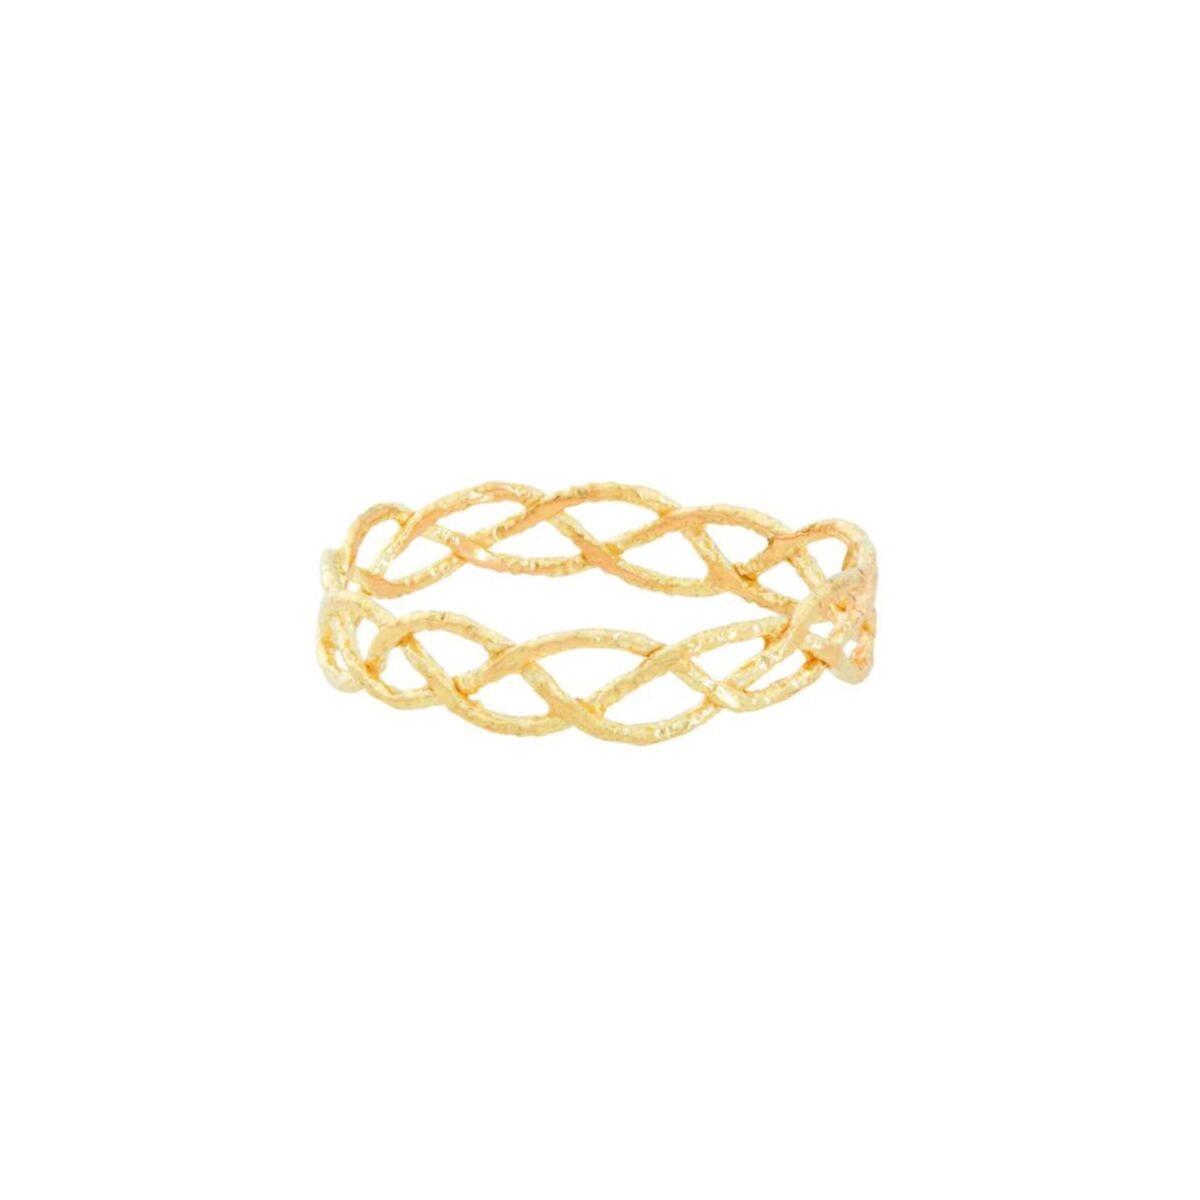 Braided Ring image